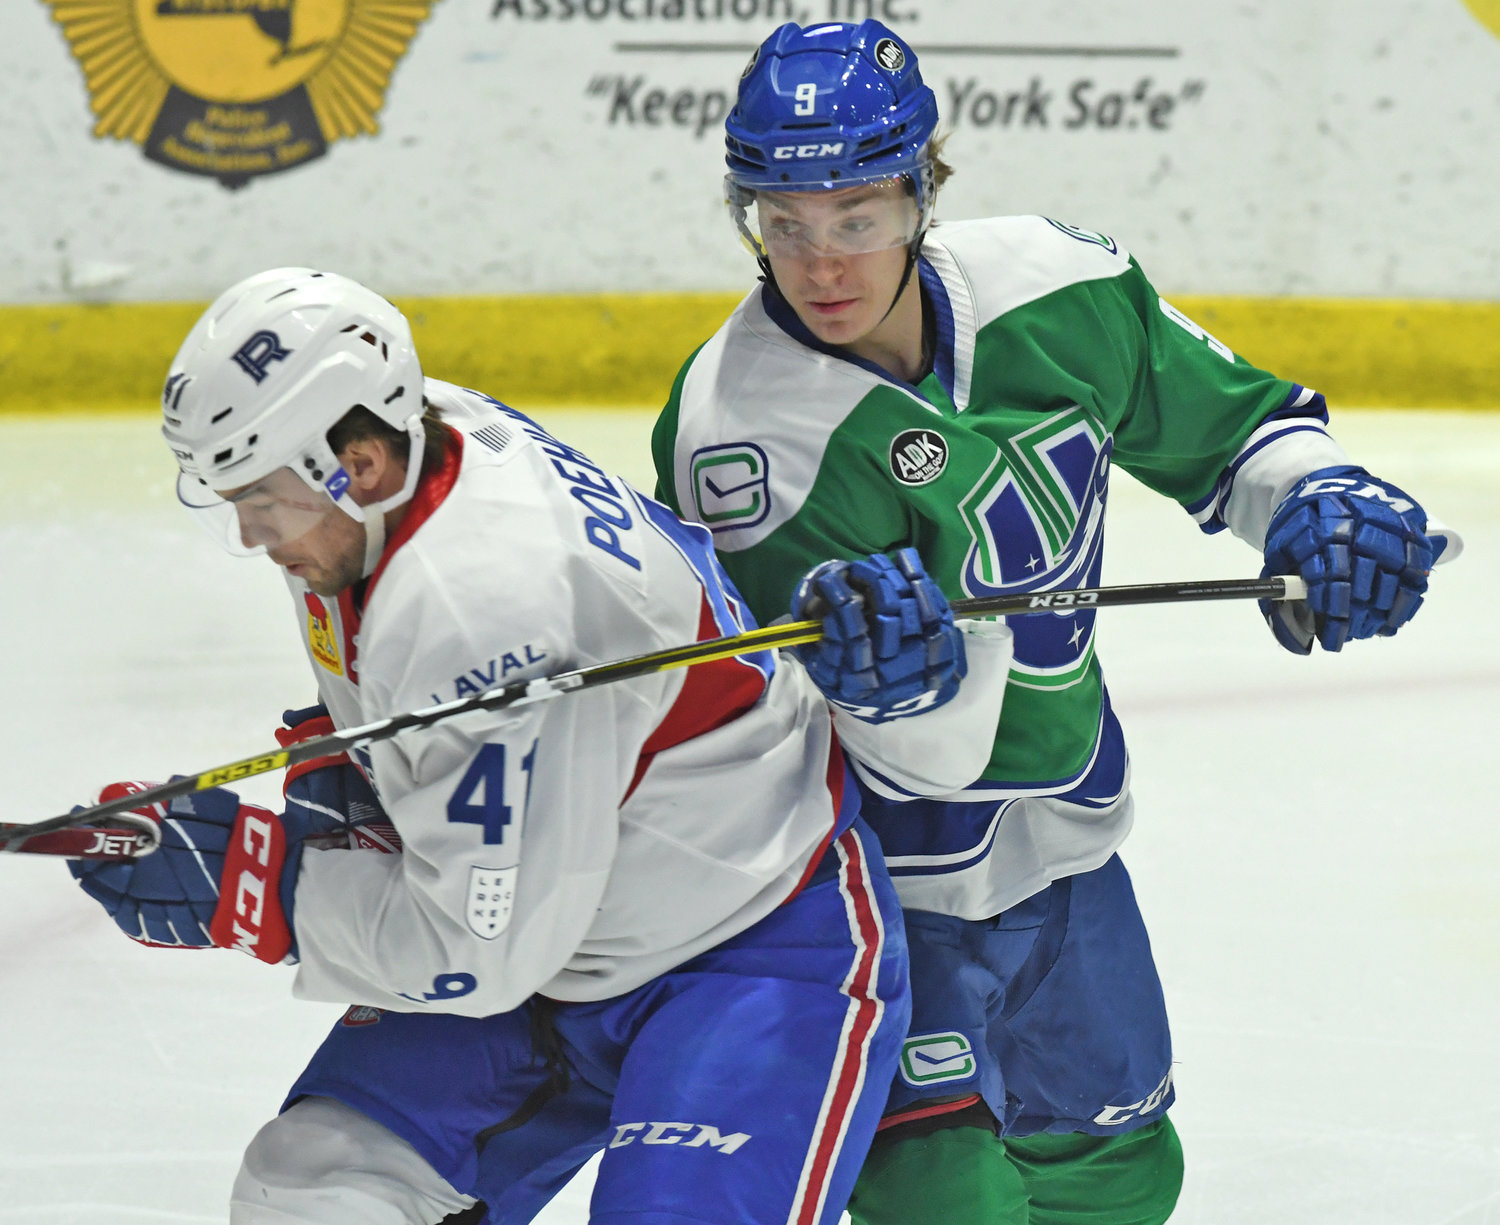 Comets #9 holds back Laval #41 in the first period.